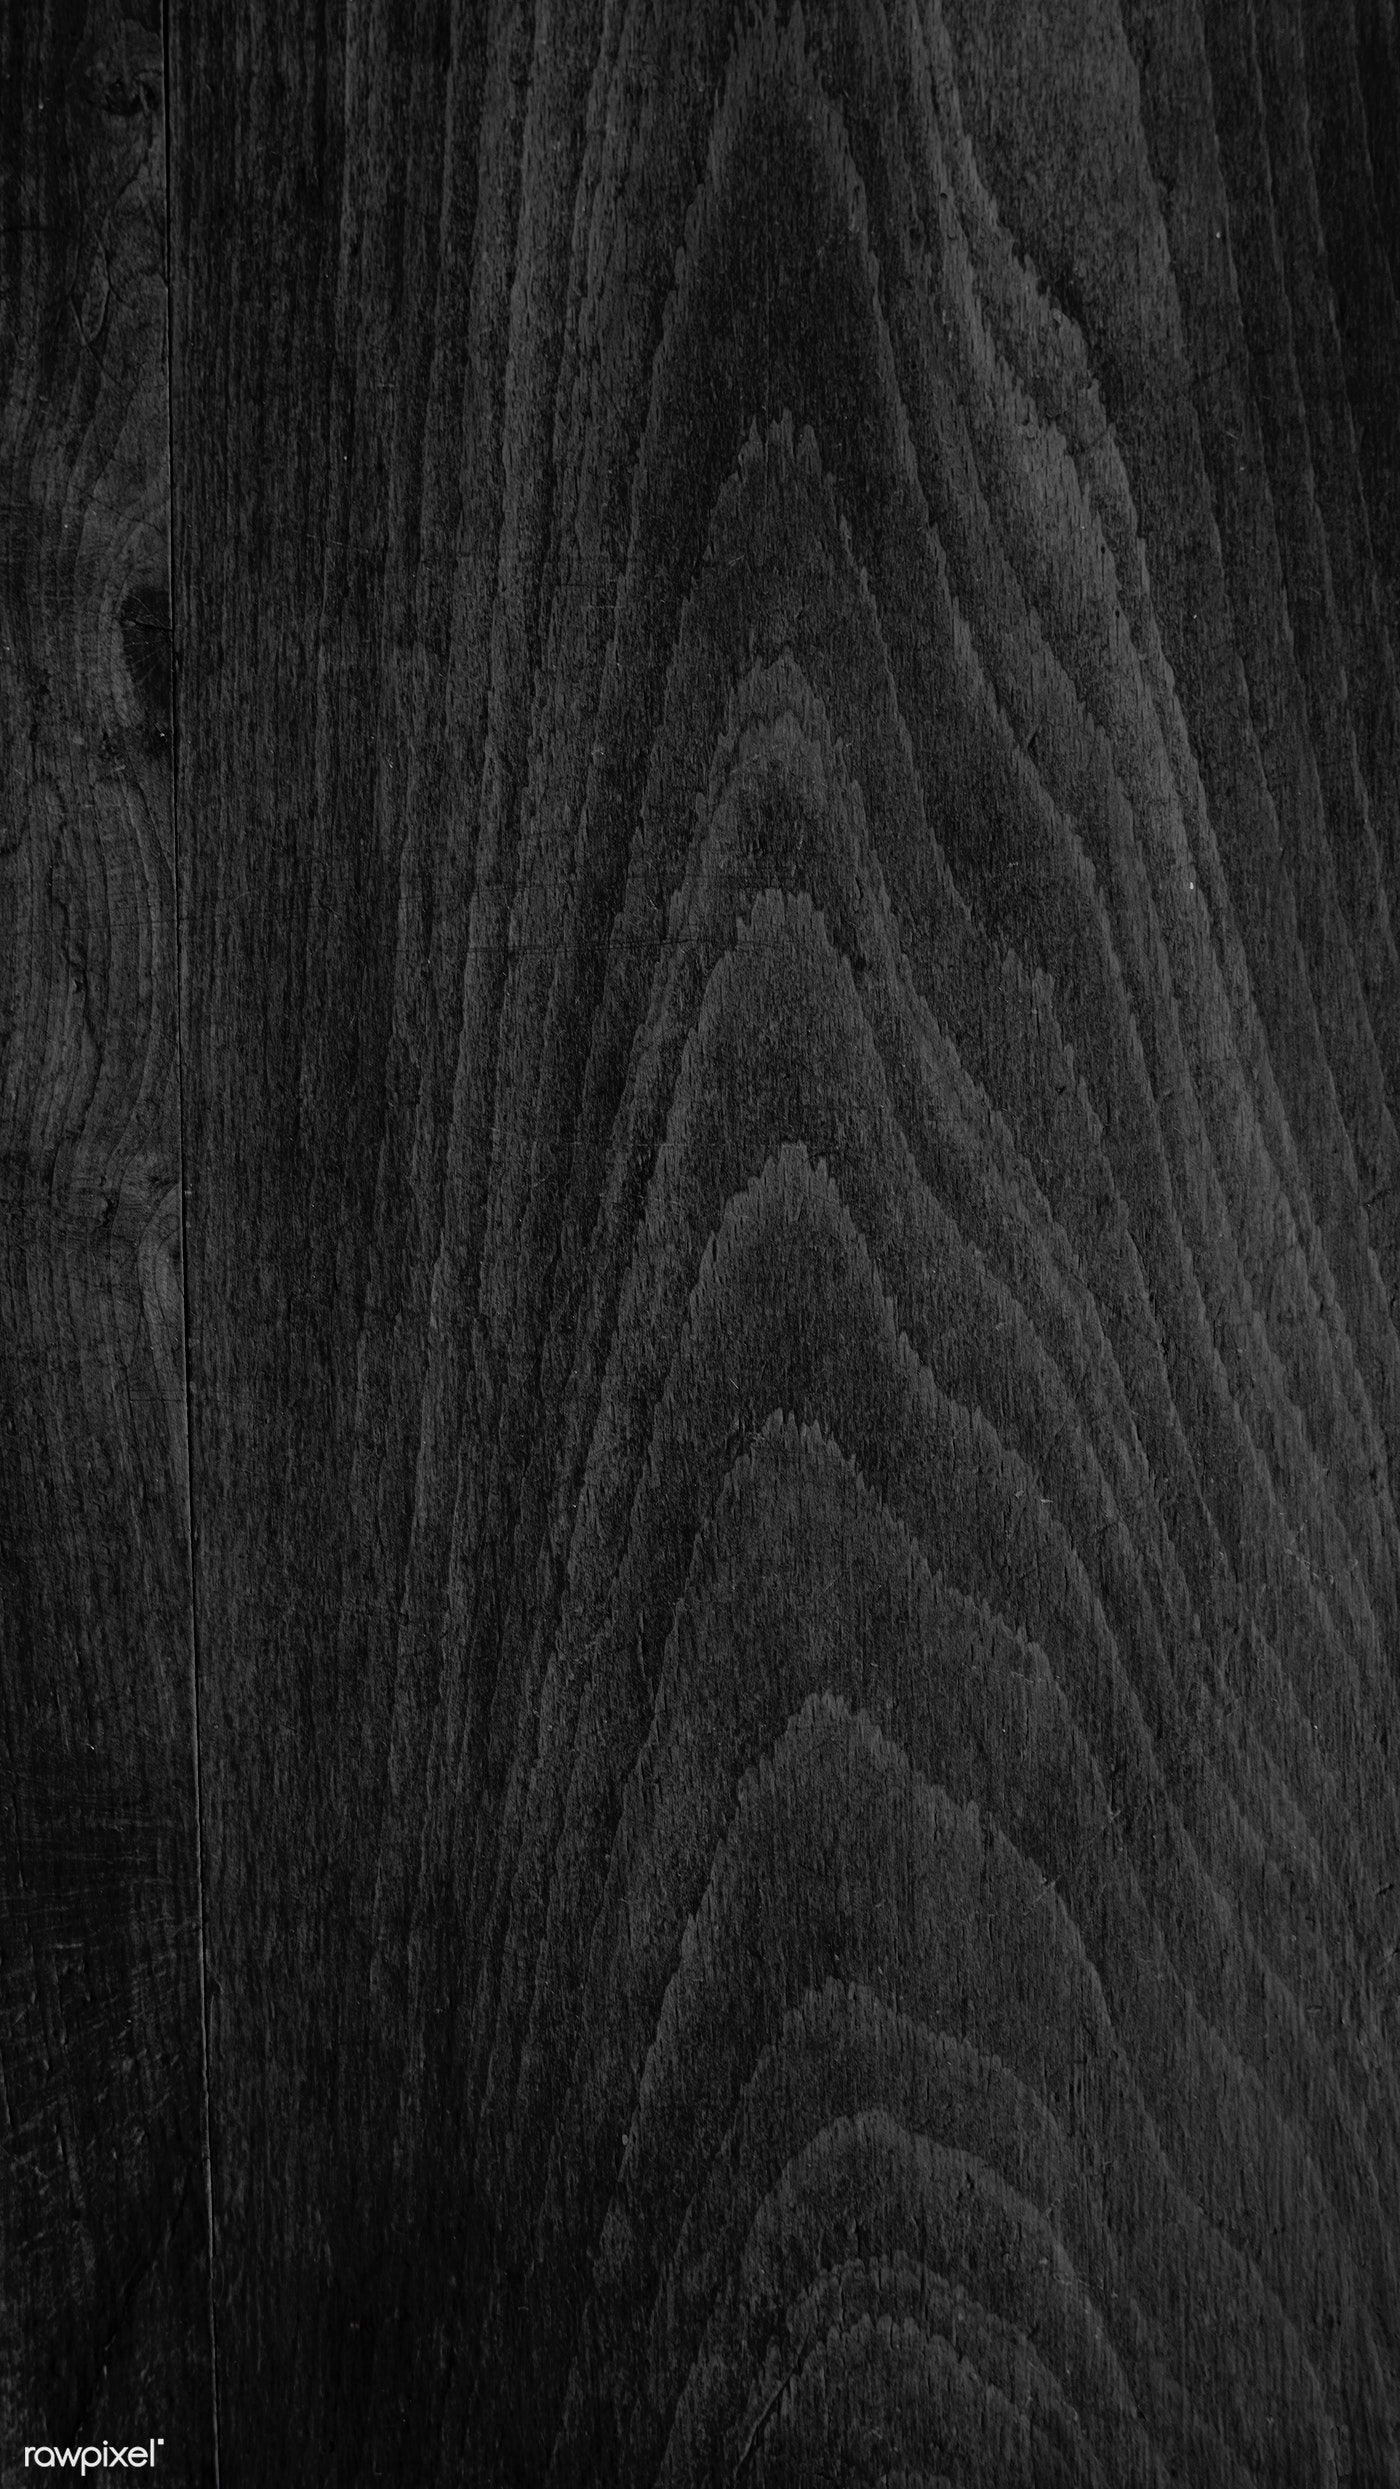 Blank Black Wooden Textured Mobile Wallpaper Background Free Image By Rawpixel Com Nunny Black Wood Texture Black Wood Background Black Pic Background